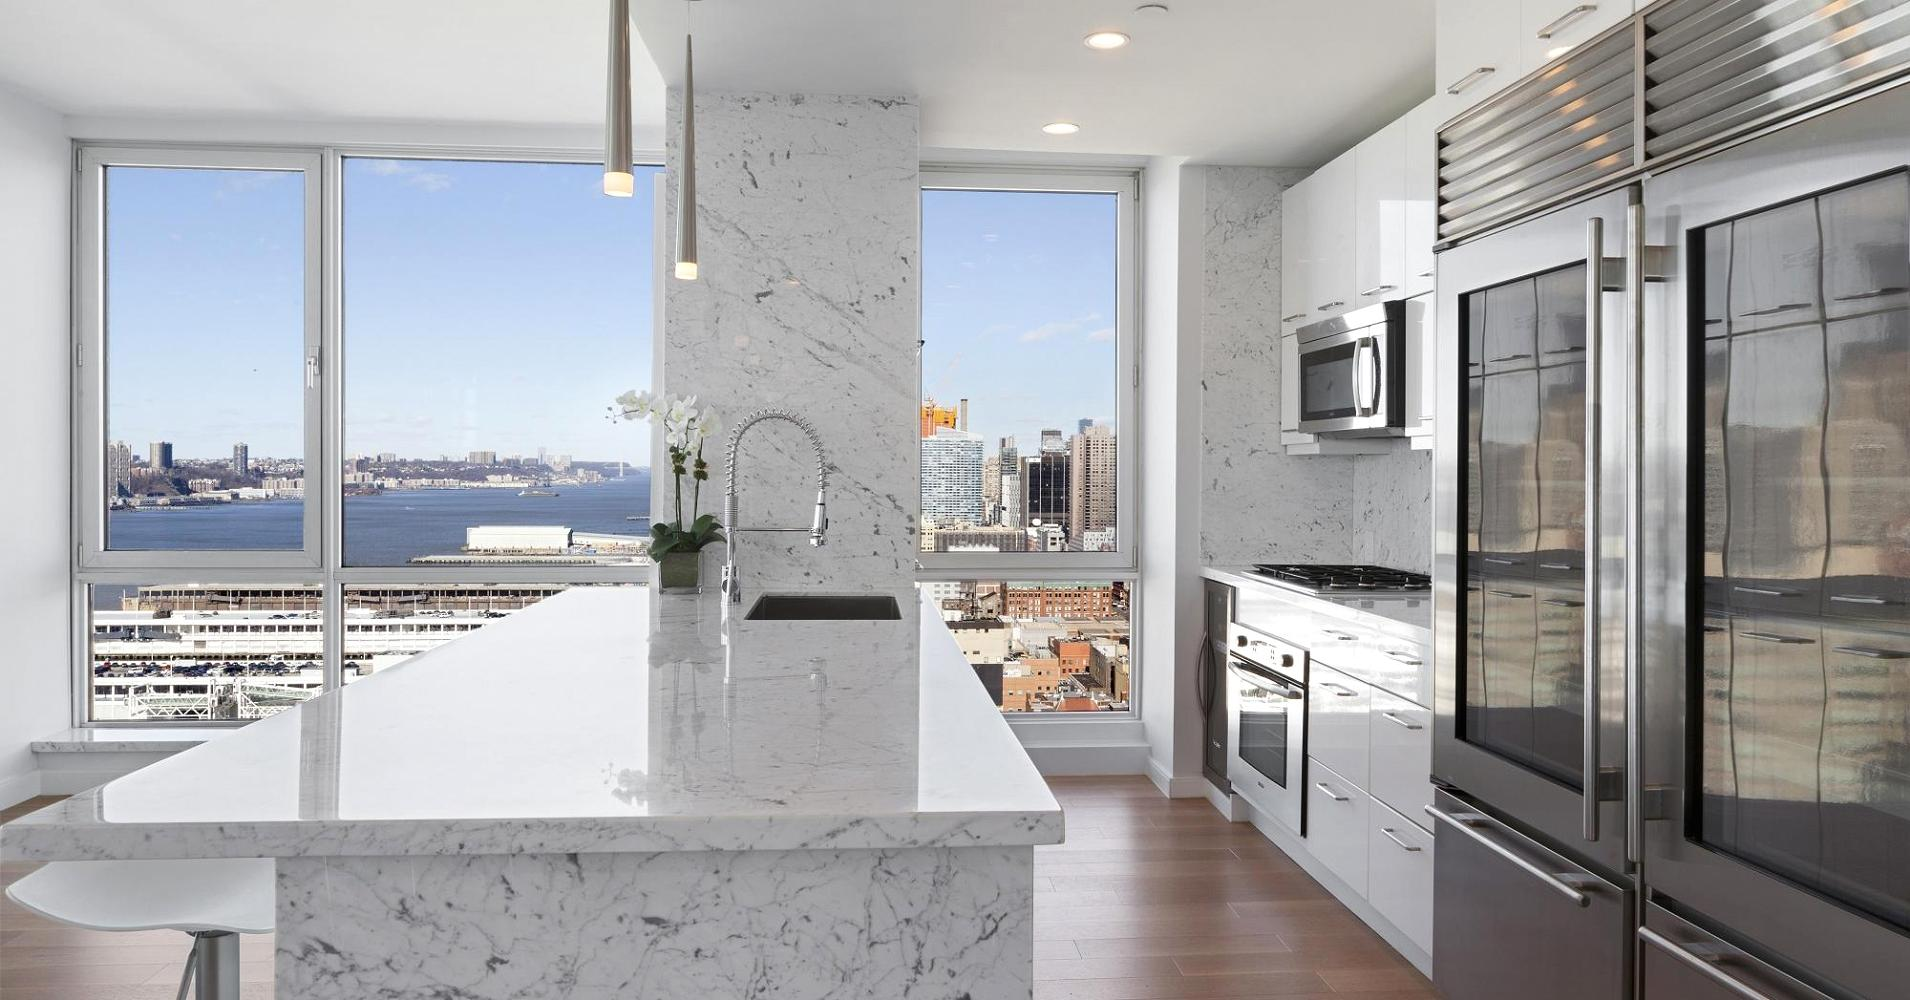 This $85 million NYC penthouse comes with a trip to space and court-side NBA season tickets